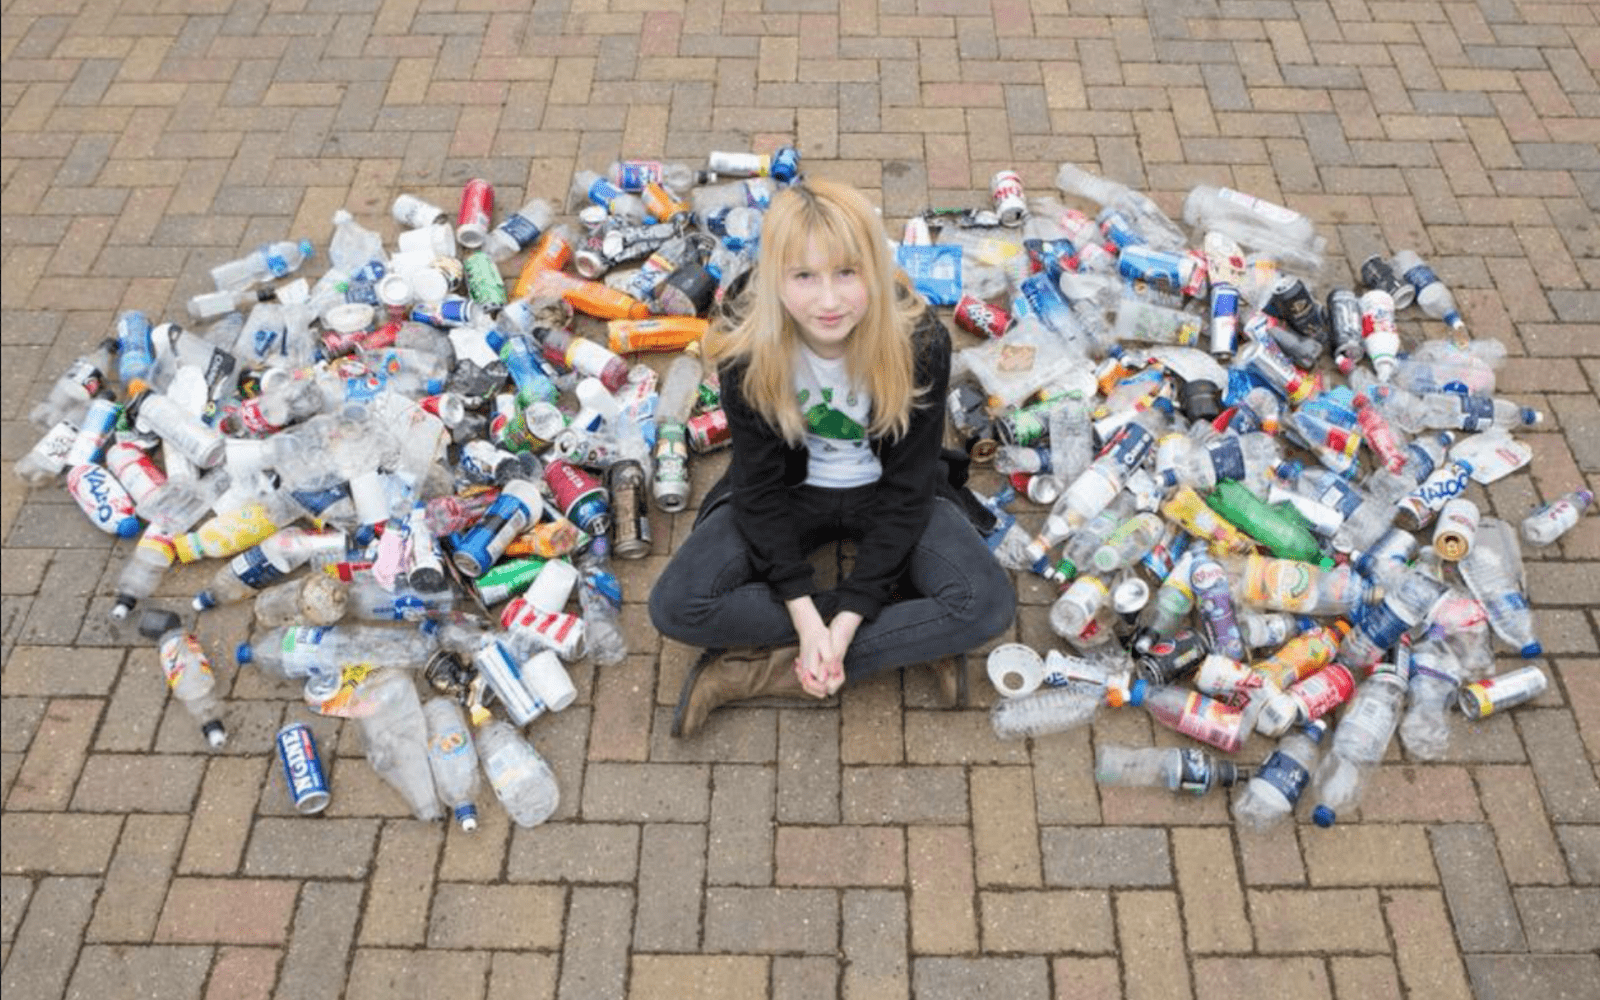 12 Year-Old Super Hero Saves The World, One Piece Of Rubbish At A Time